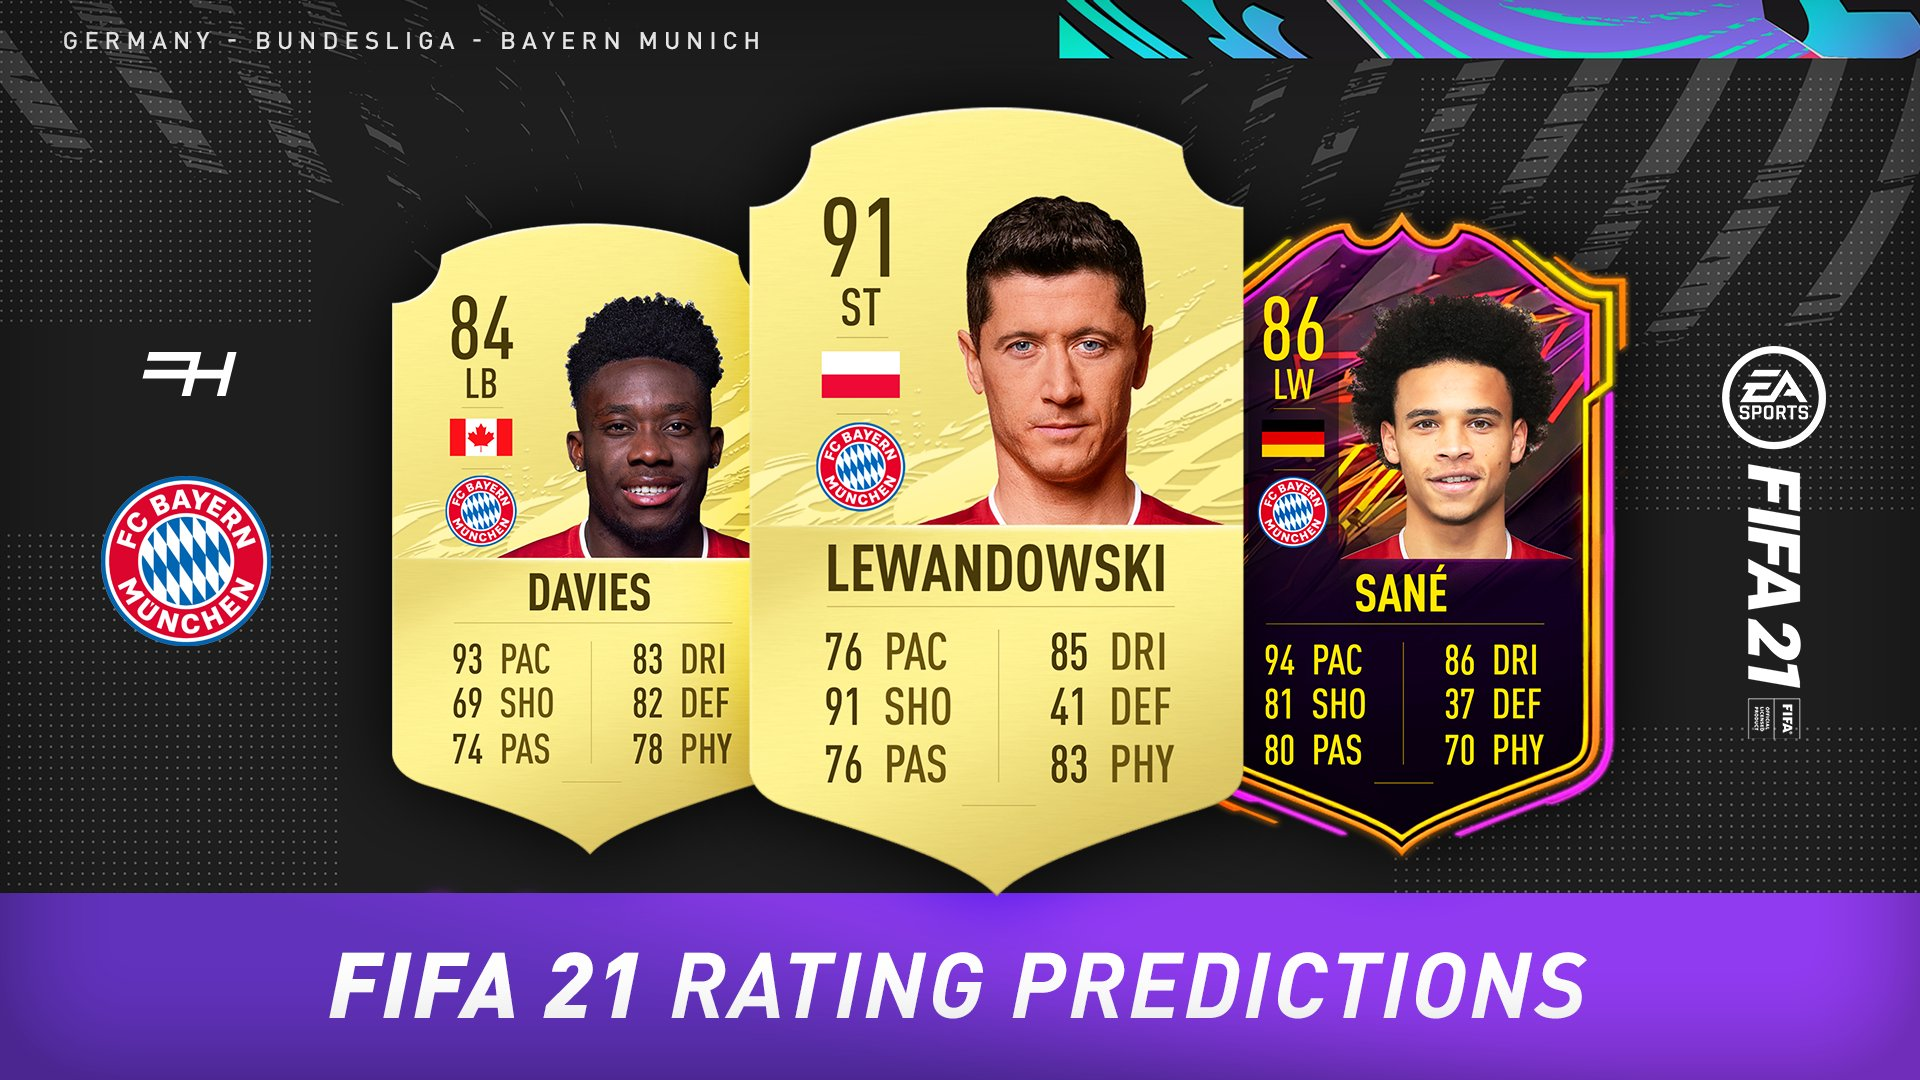 fifa 21 rating predictions bayern munich futhead news fifa 21 rating predictions bayern